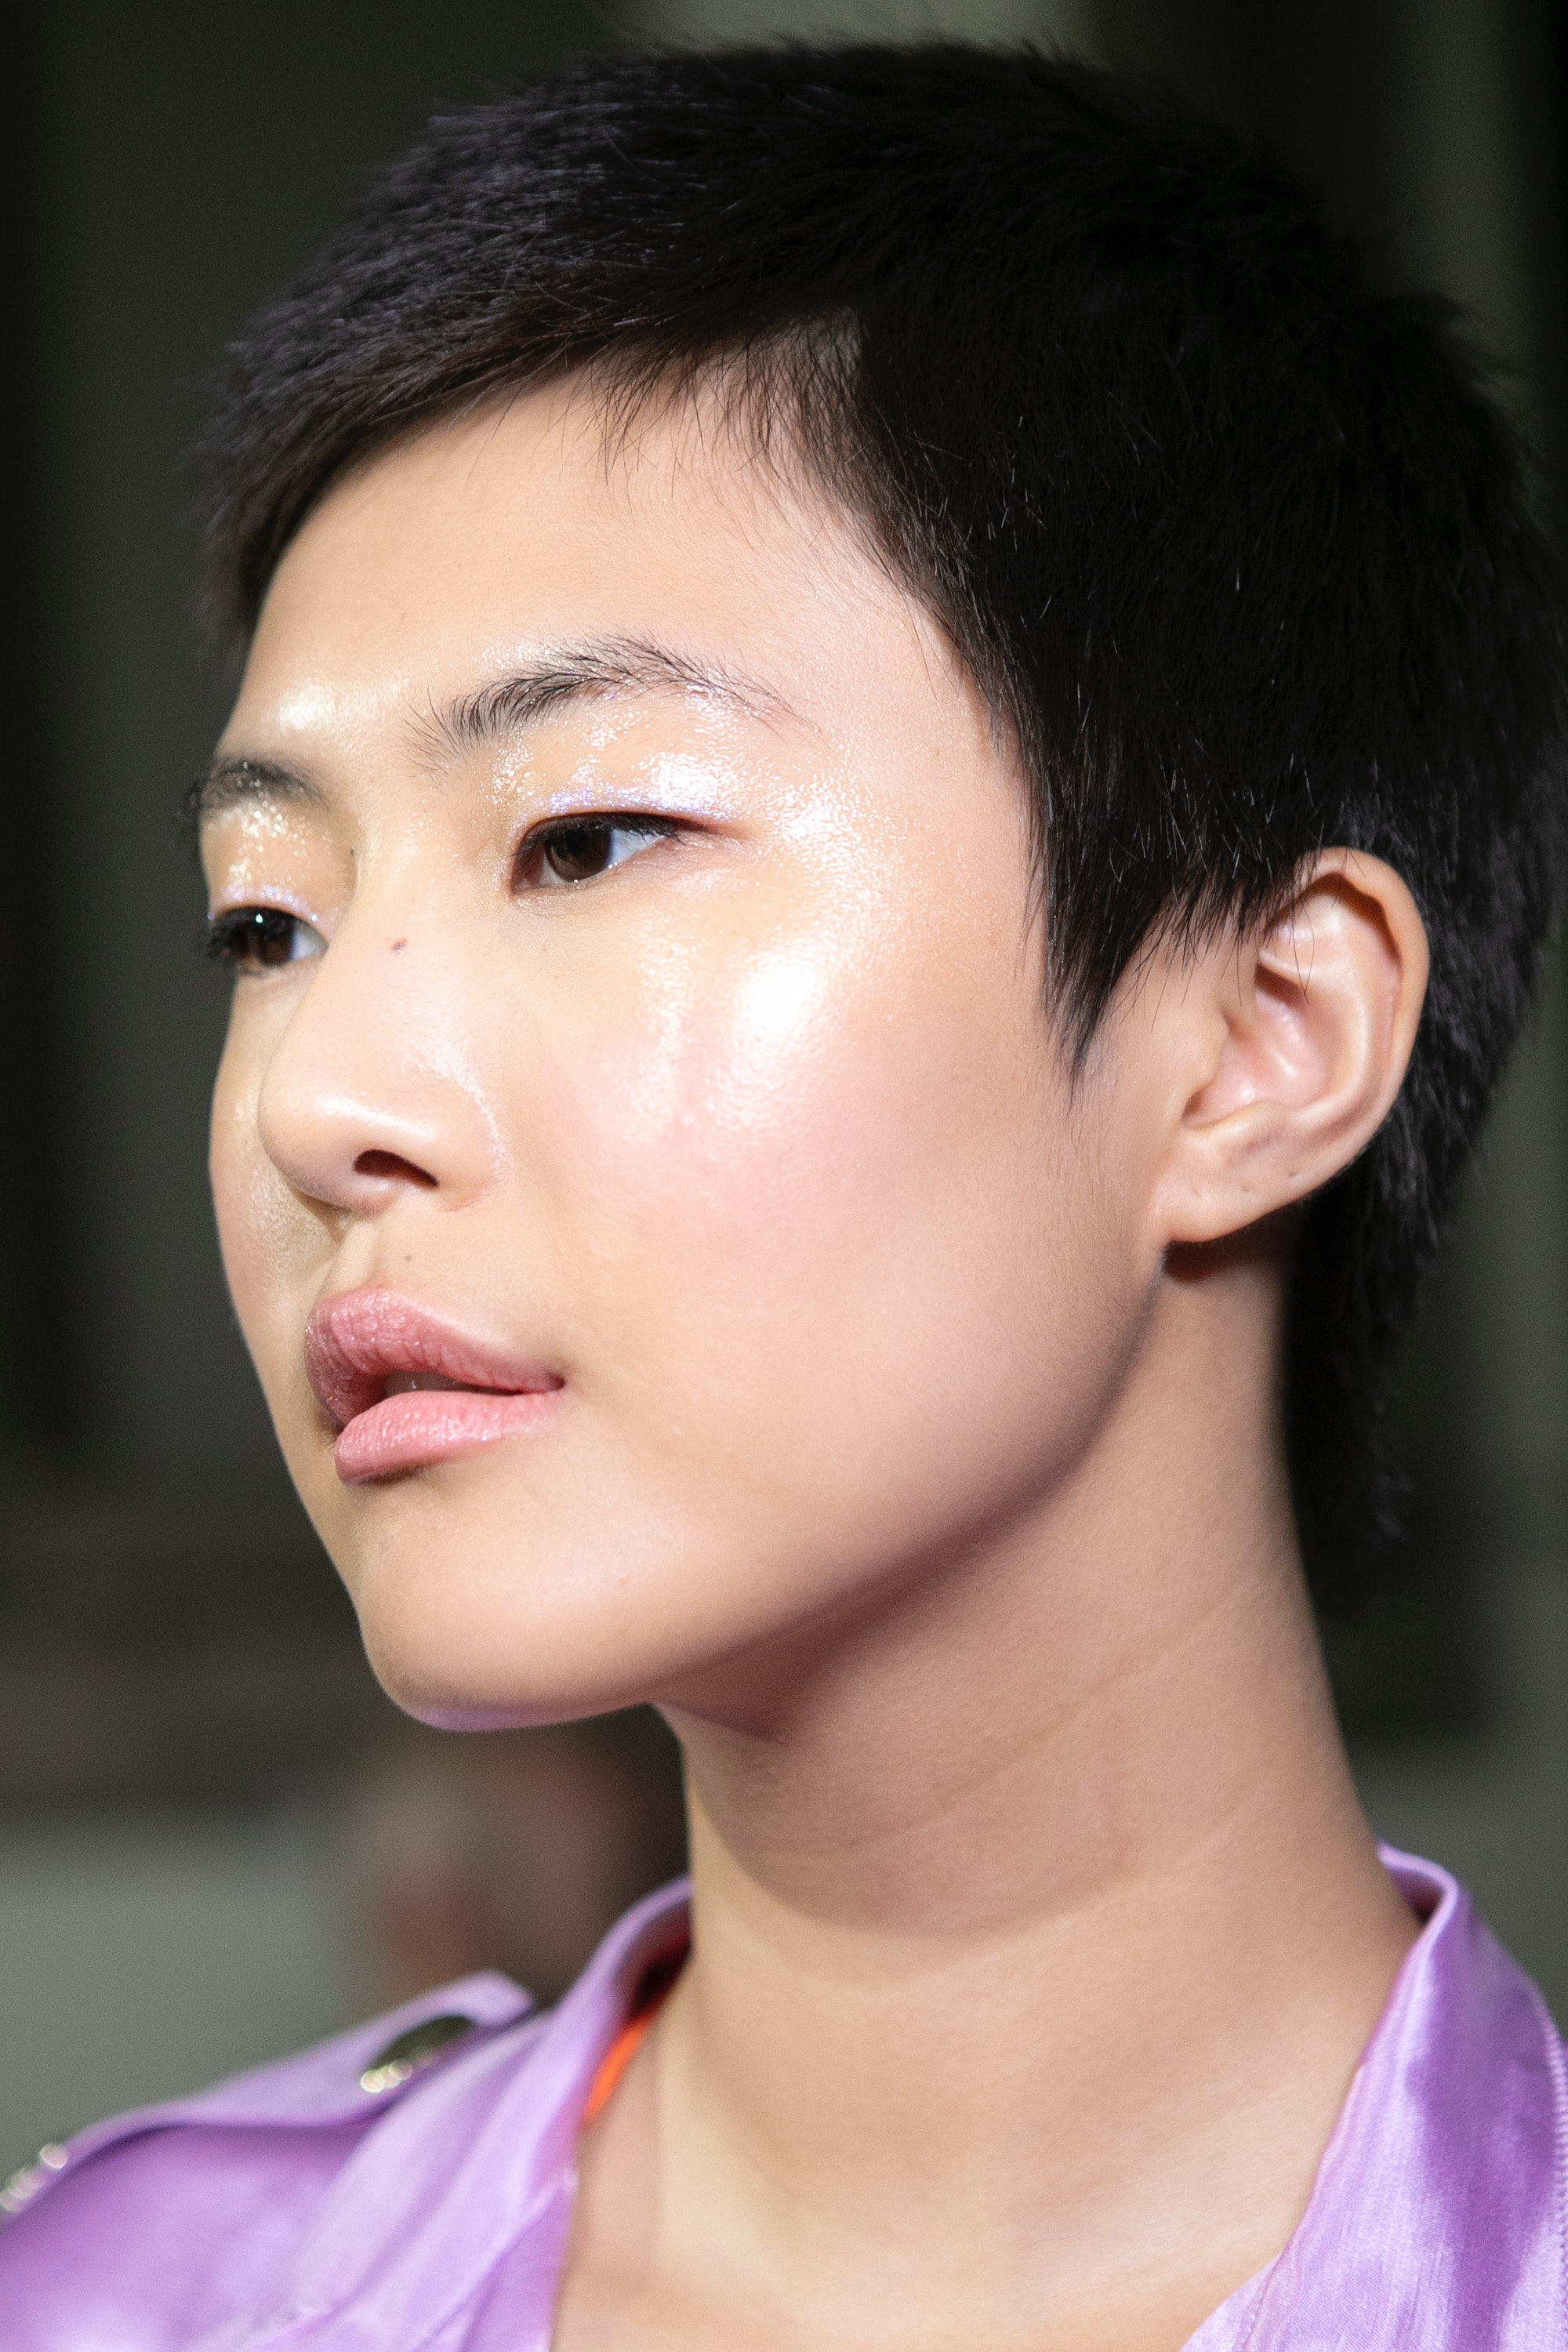 smooth skin and enhanced nose